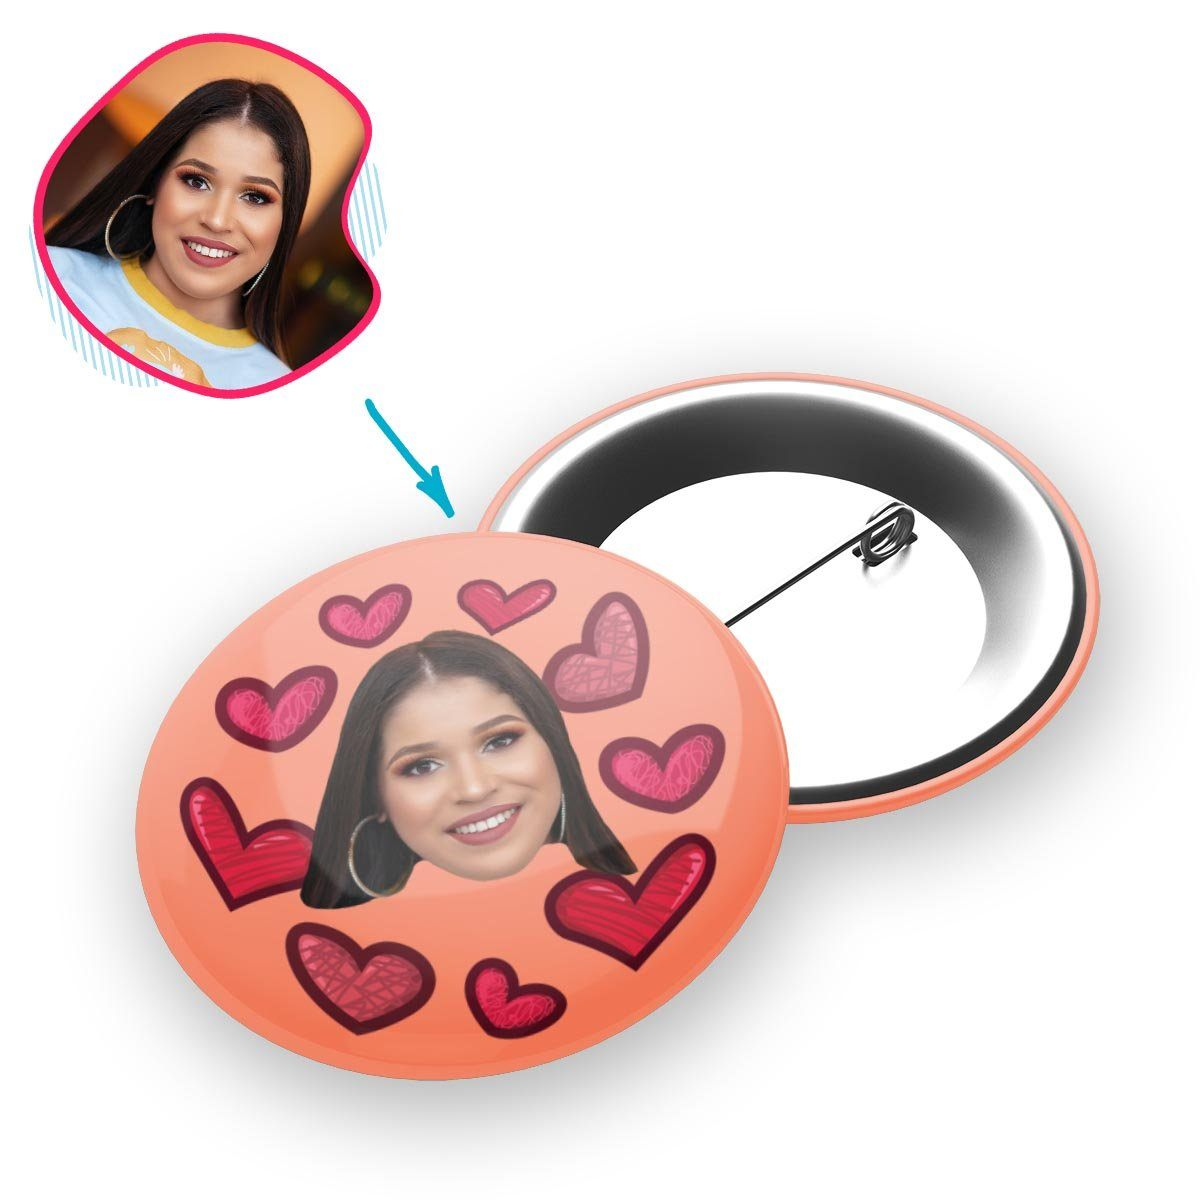 salmon Heart pin personalized with photo of face printed on it